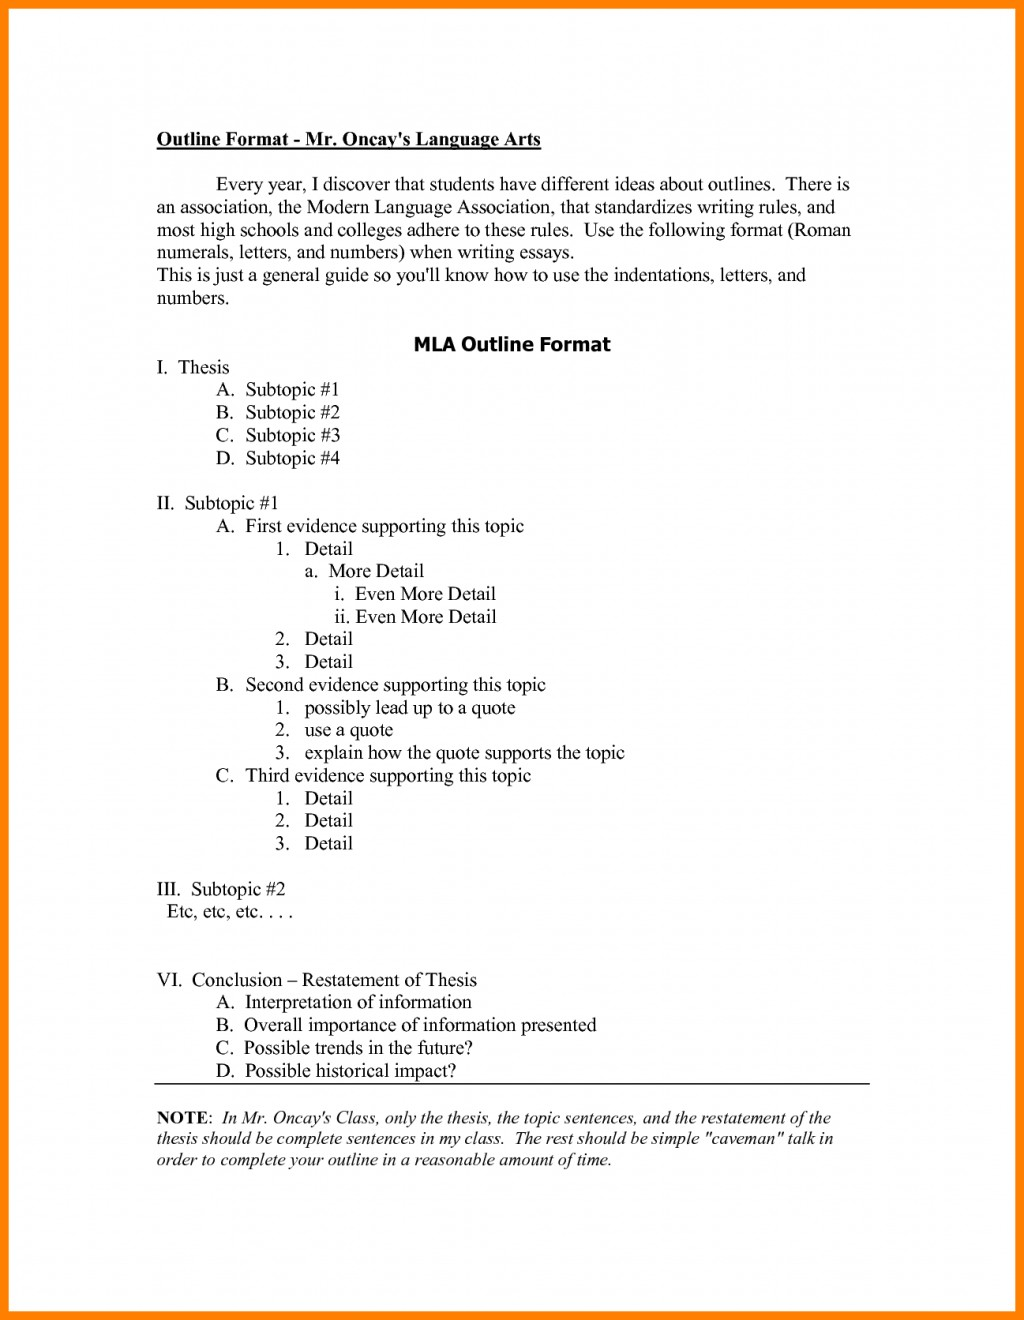 009 Research Paper Mla Template Format Outline Examples 148 Shocking Word Google Docs Large